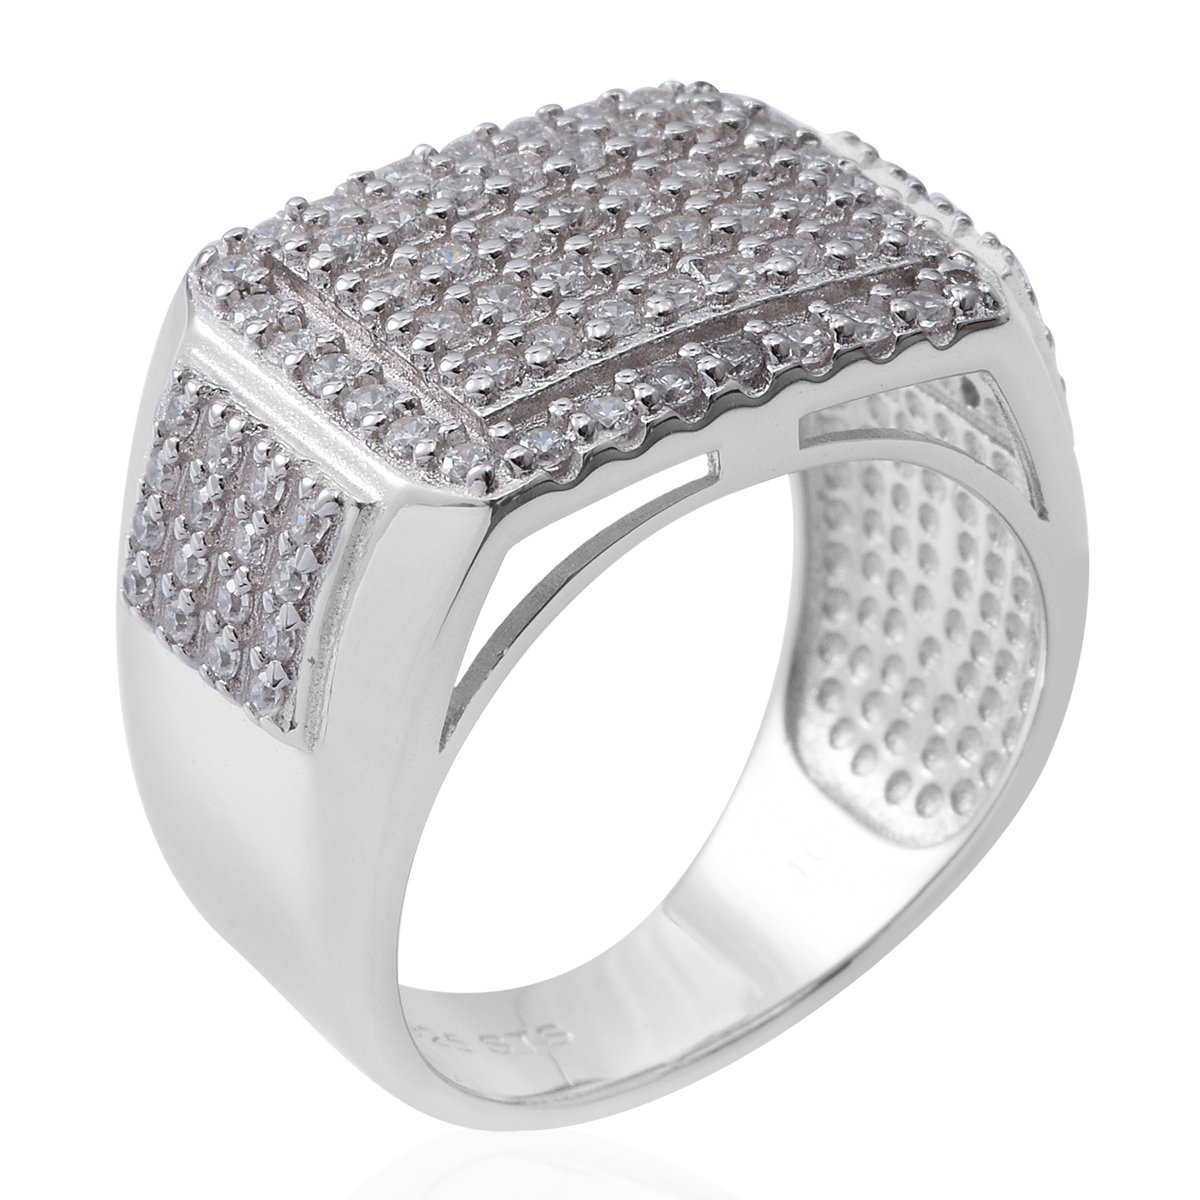 925 Sterling Silver 1.9 Cttw Round Cubic Zirconia Men's Fathers Day Gift Ring Size 10 by Shop LC (Image #3)